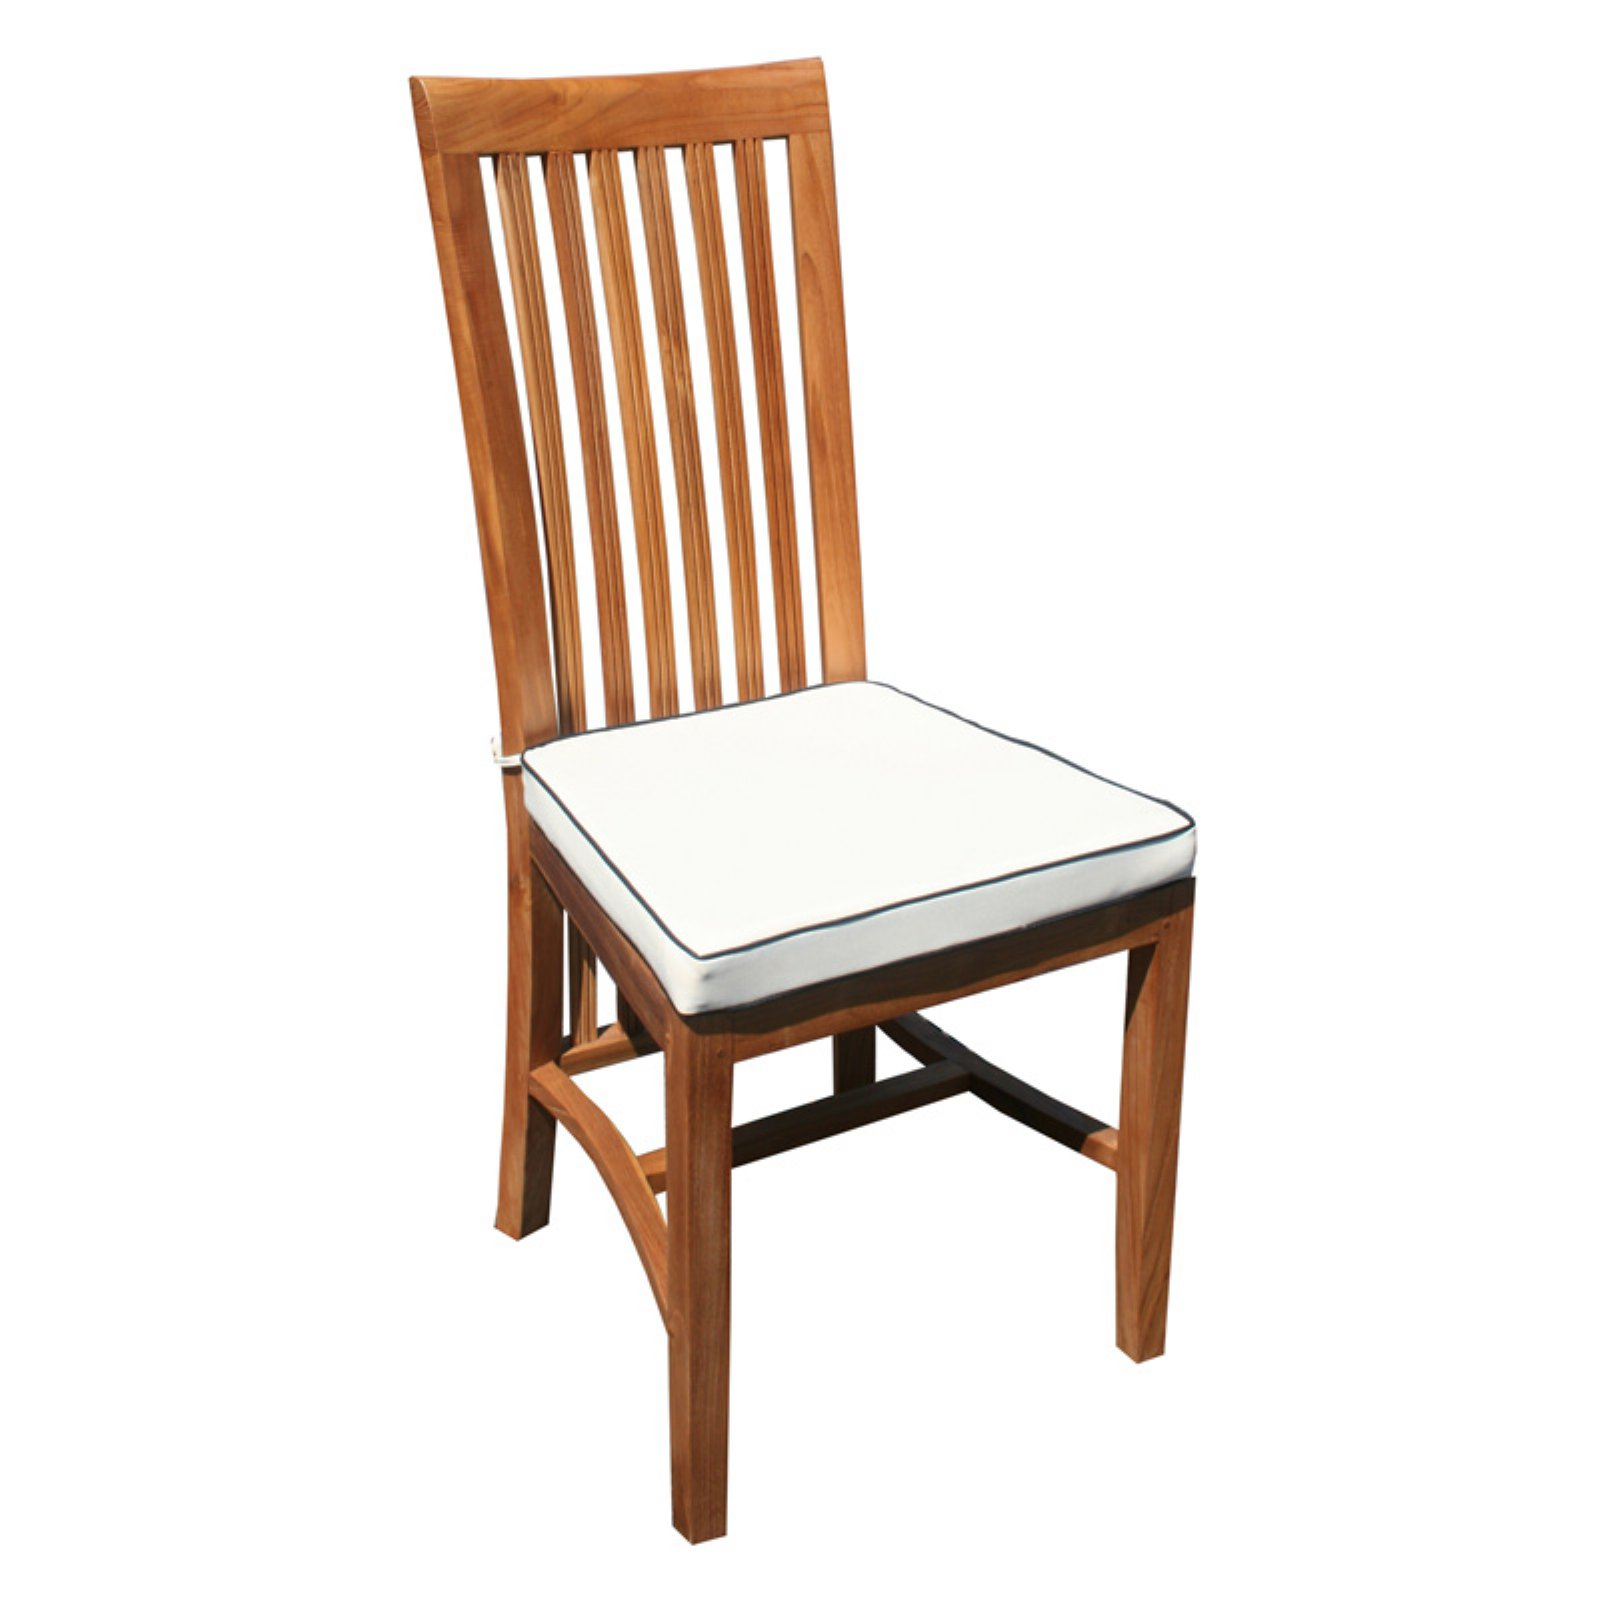 Chic Teak West Palm Balero Outdoor Side Chair Cushion by